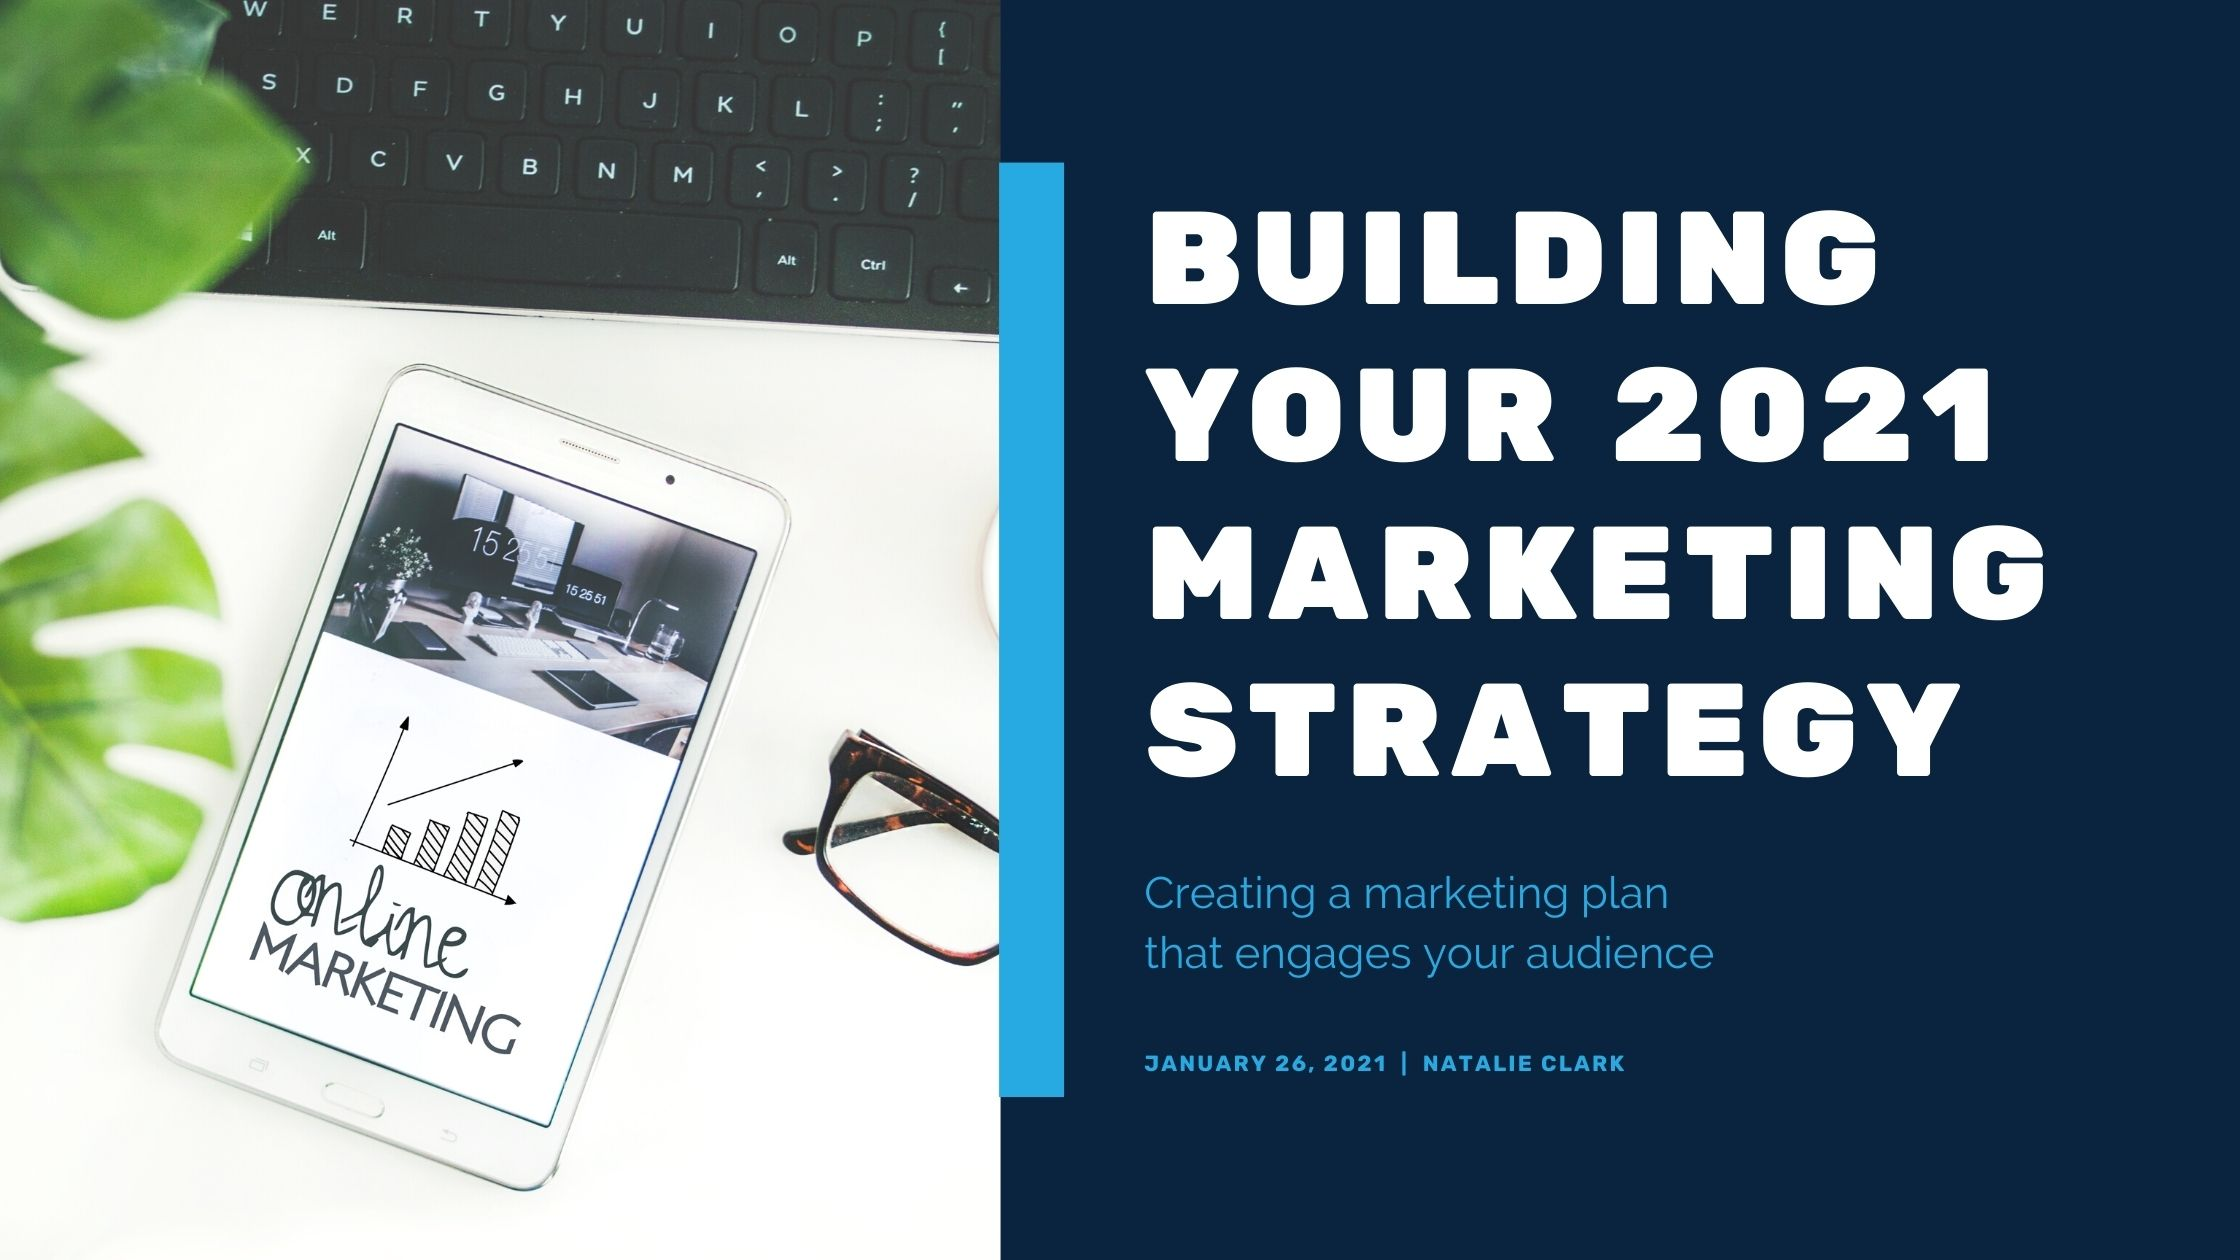 Building Your 2021 Marketing Strategy - Promo Edition